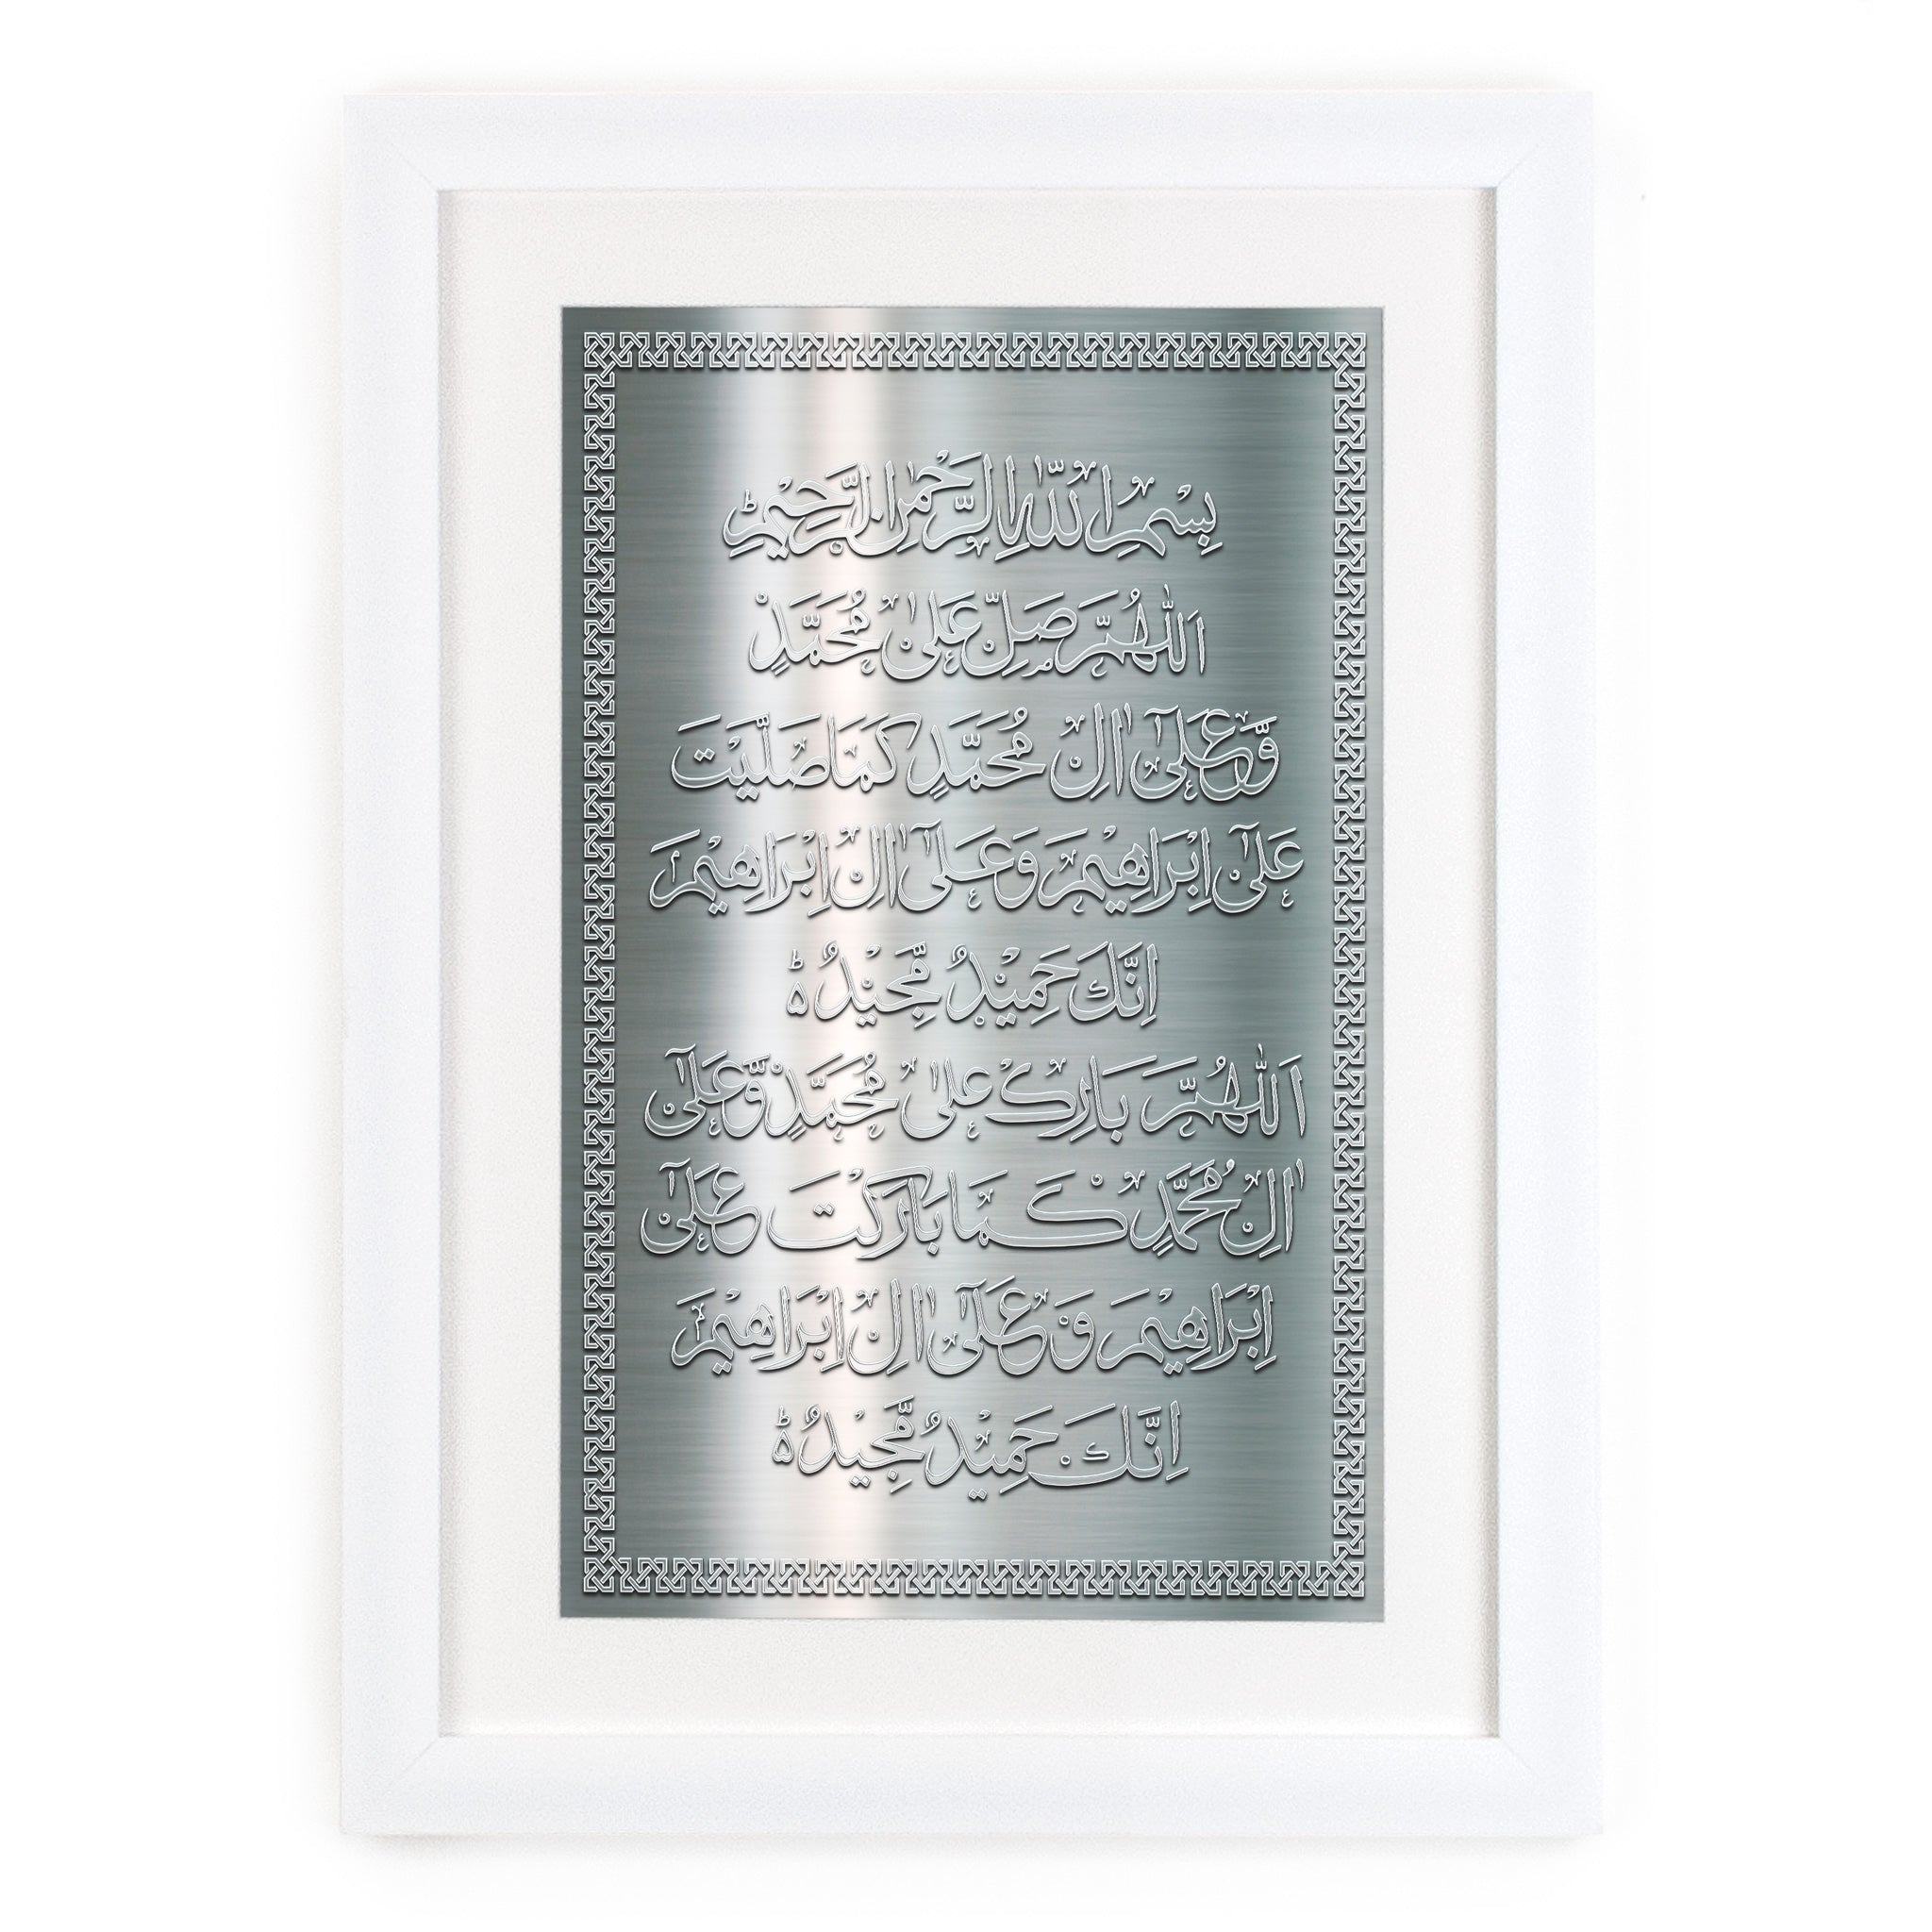 Durood Shareef (Durood-e-Ibrahim) - Brushed Metal Effect Design ...